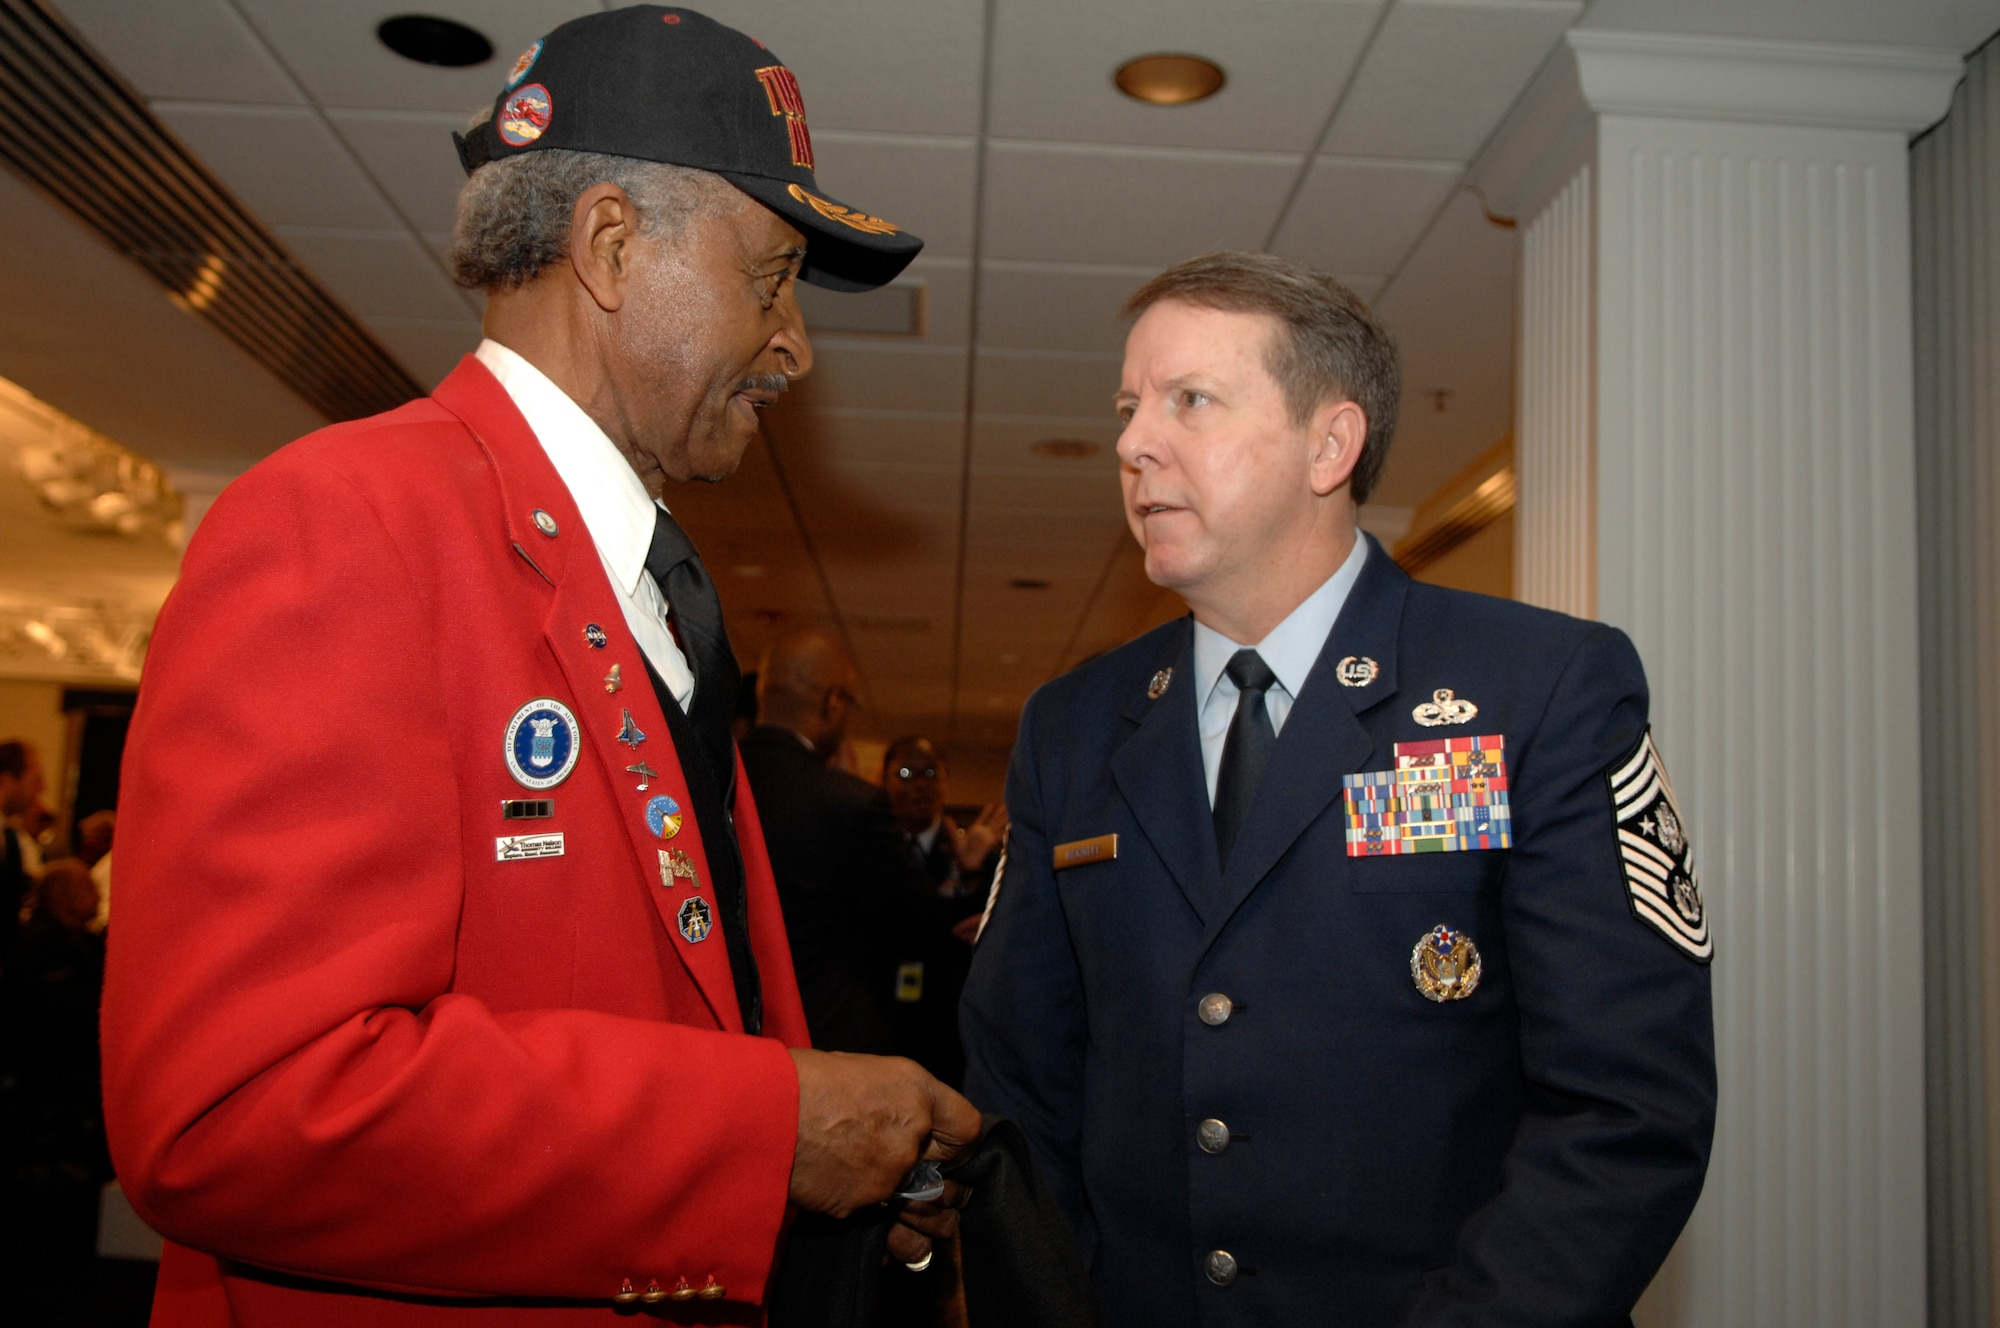 Tuskegee Airman Ezra Hill speaks with Chief Master Sergeant of the Air Force Rodney McKinley Jan. 20 at the Bolling Club on Bolling Air Force Base, D.C. More than 180 Tuskegee Airmen and their families gathered for a special breakfast before being bused downtown for the 2009 inaugural events.  (U.S. Air Force photo by Senior Airman Tim Chacon)